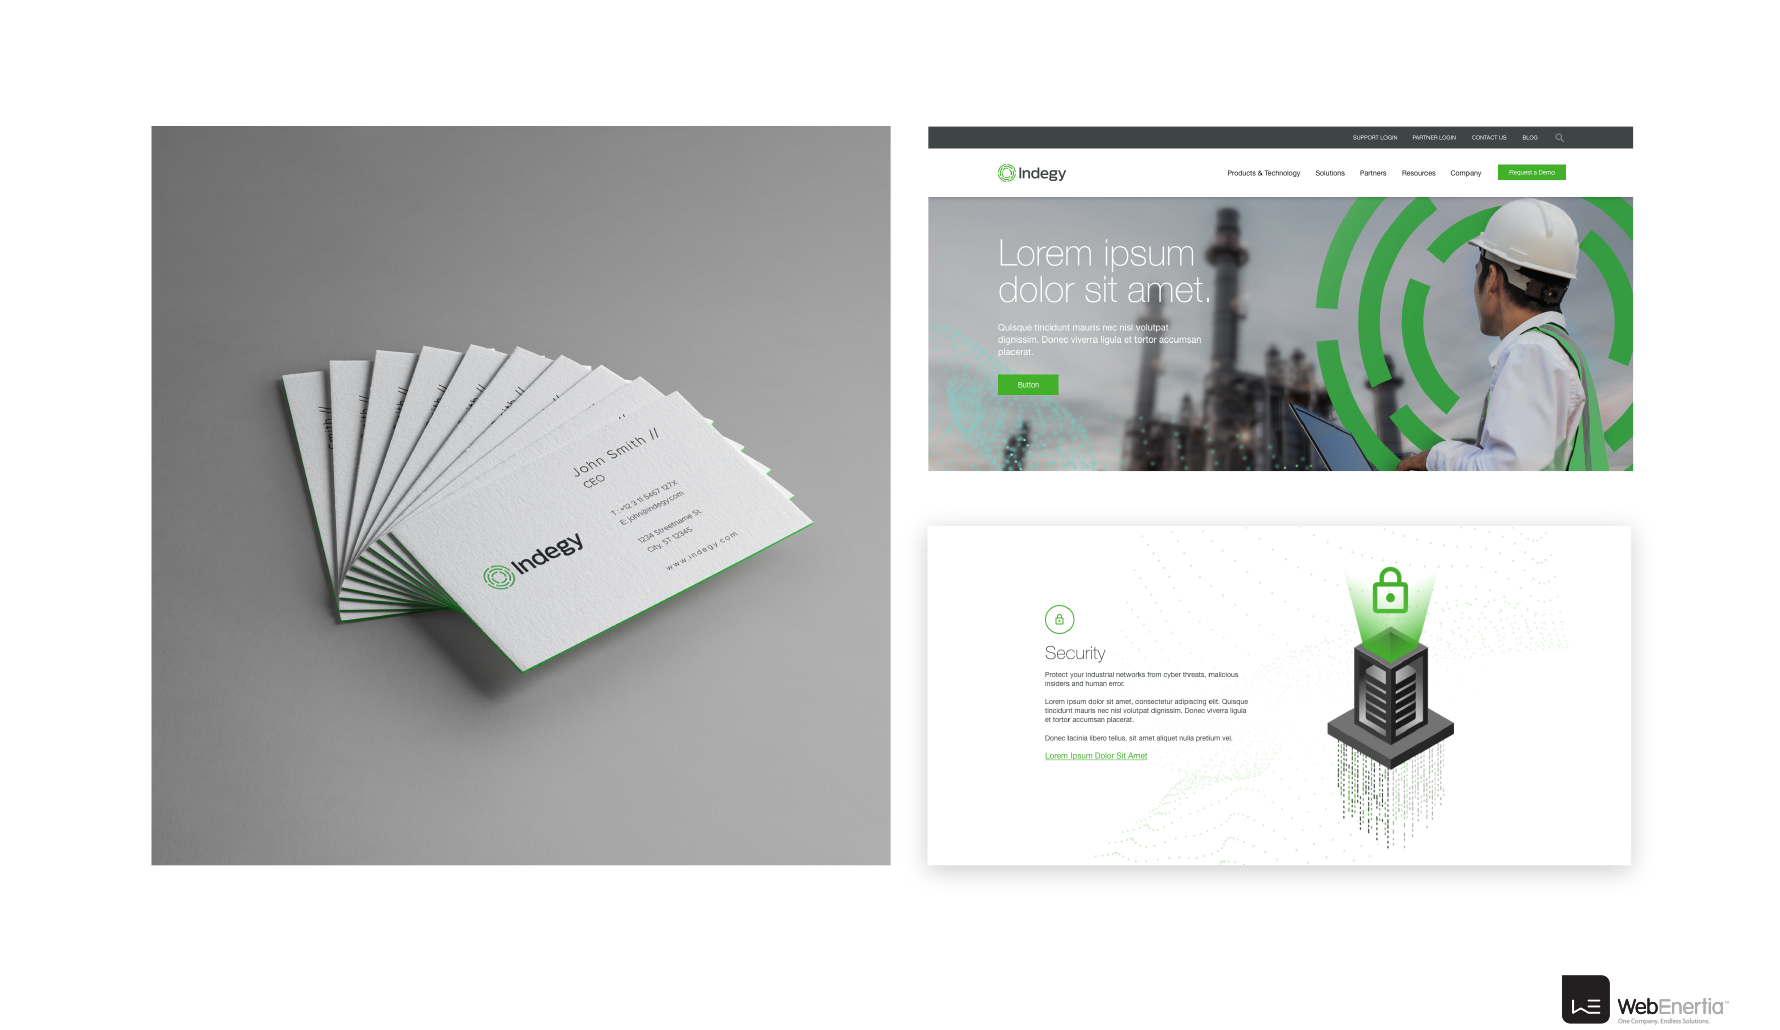 Indegy Brand Update & Guidelines business cards and website mockup